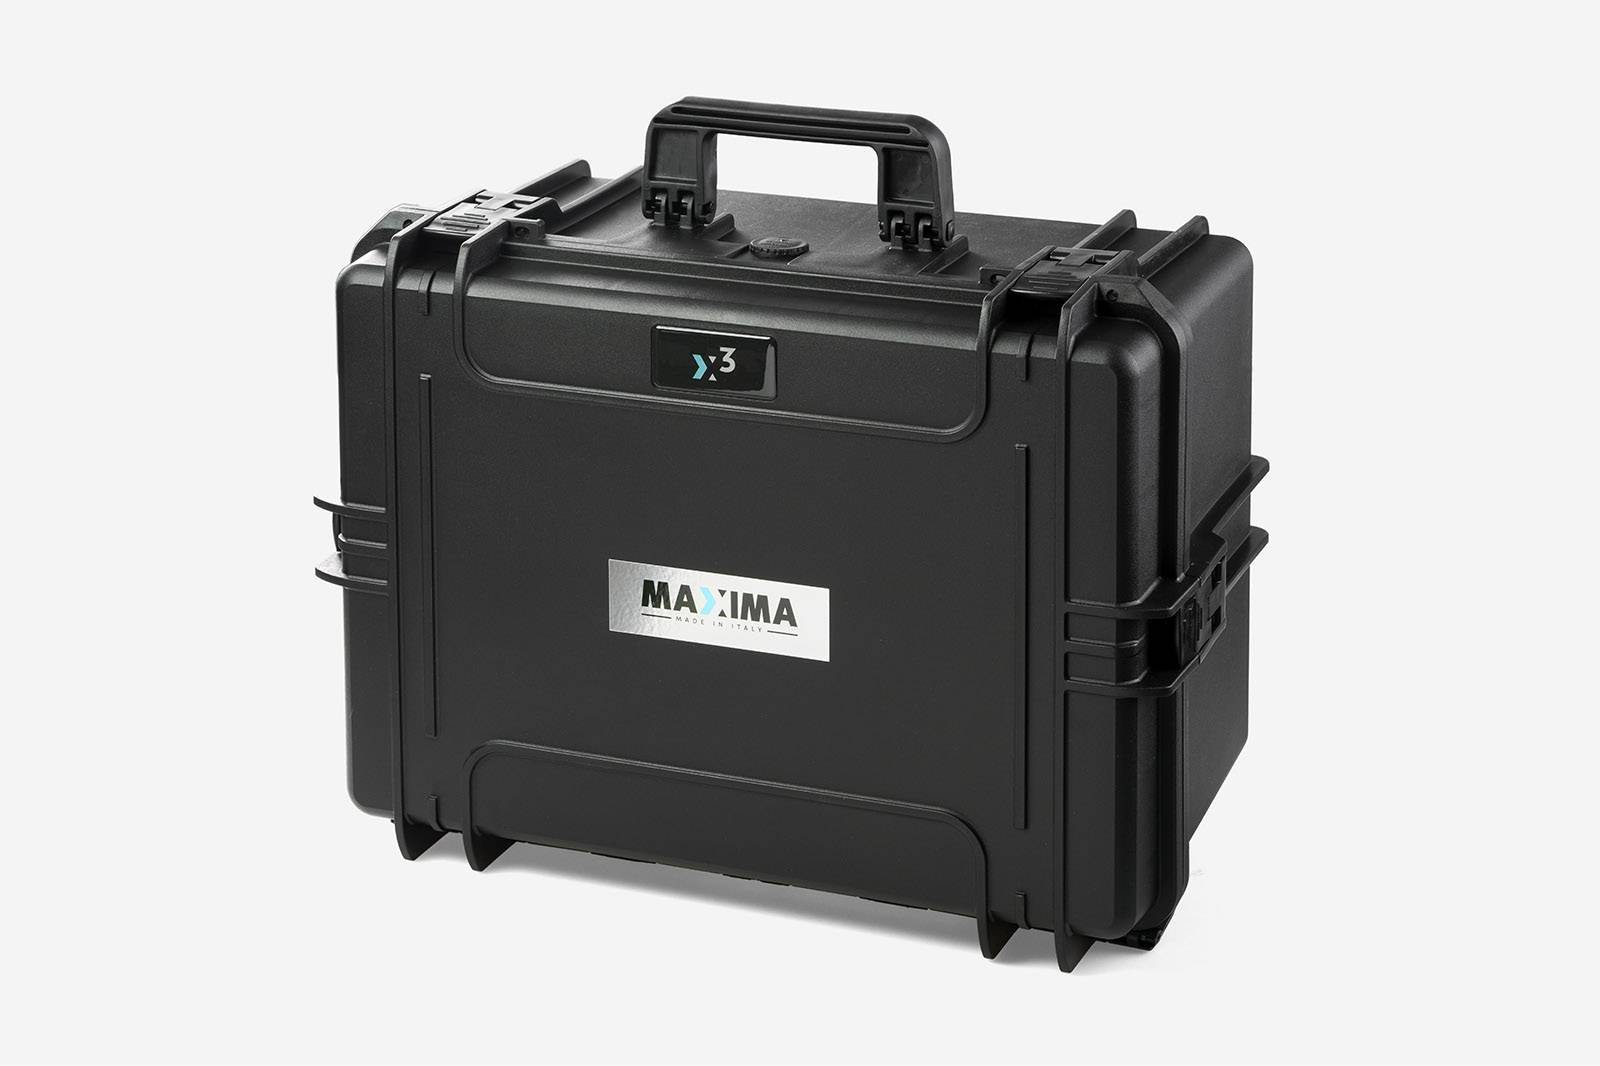 Maxima 3 All-weather case